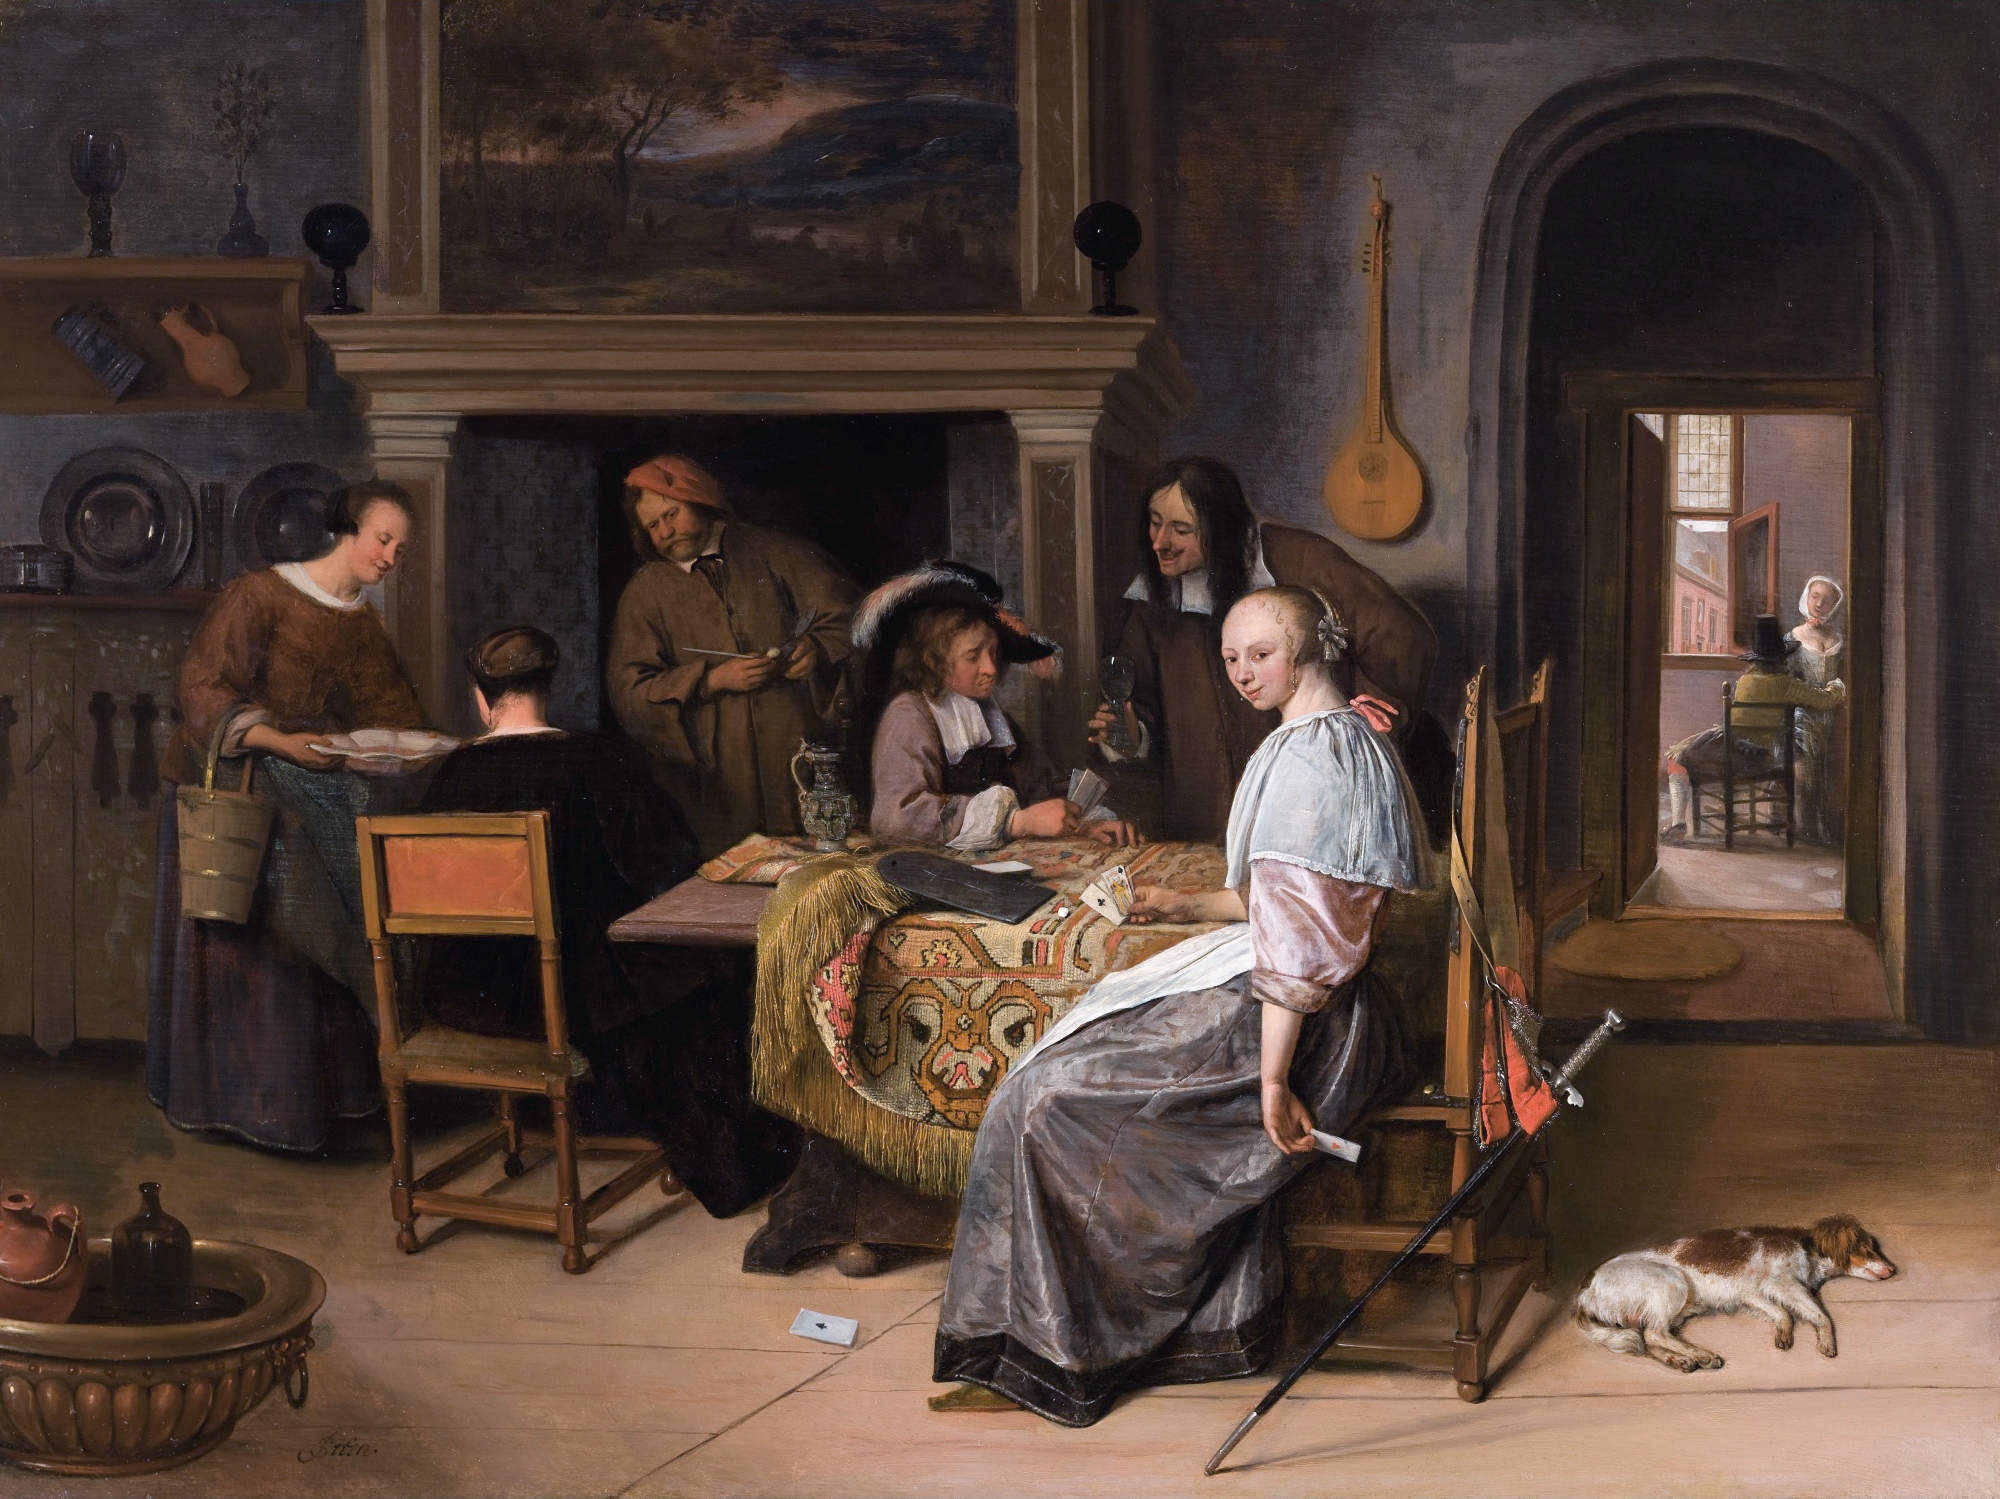 FileJan Steen The Card Players In An Interiorjpg Wikimedia Commons - Who painted the card players